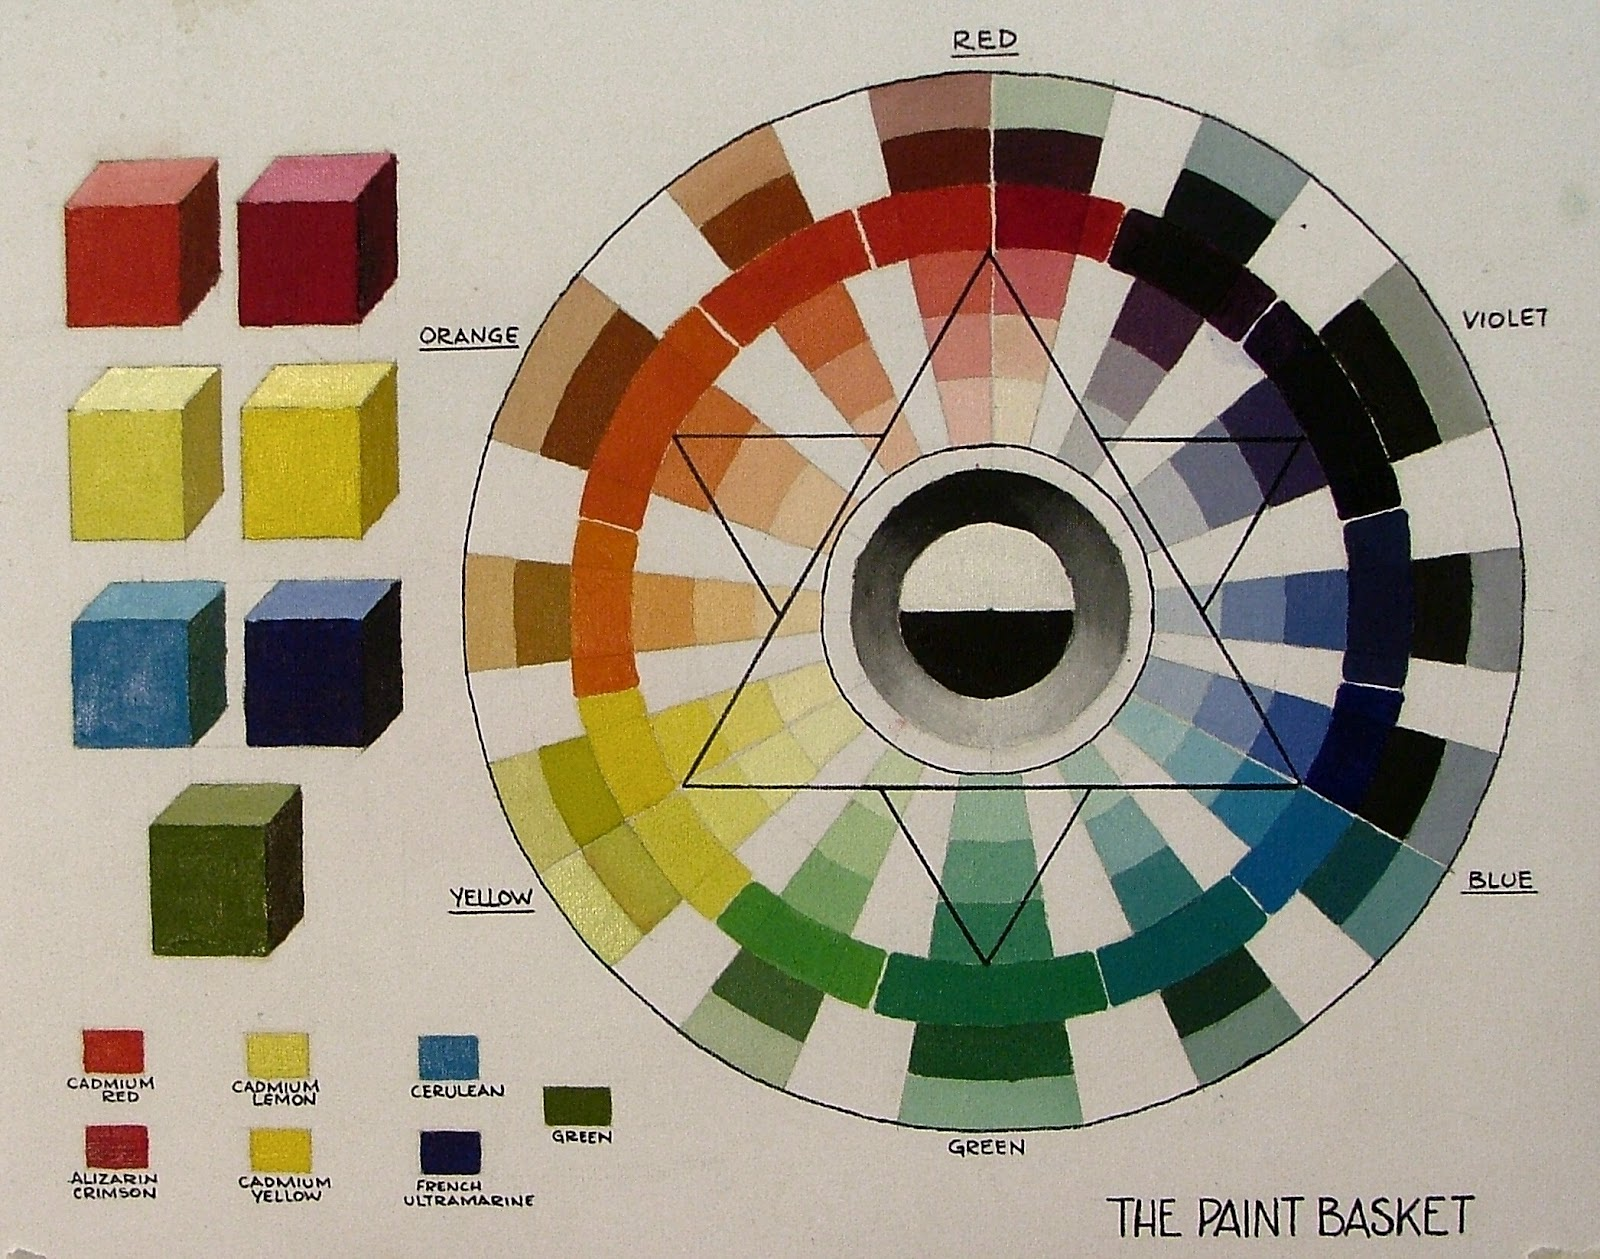 Paint colors website - The Fellow In This Video Along With His Companion Website At Paint Basket Helped Me Understand Color Theory The Best As It Applies To Creating Colors